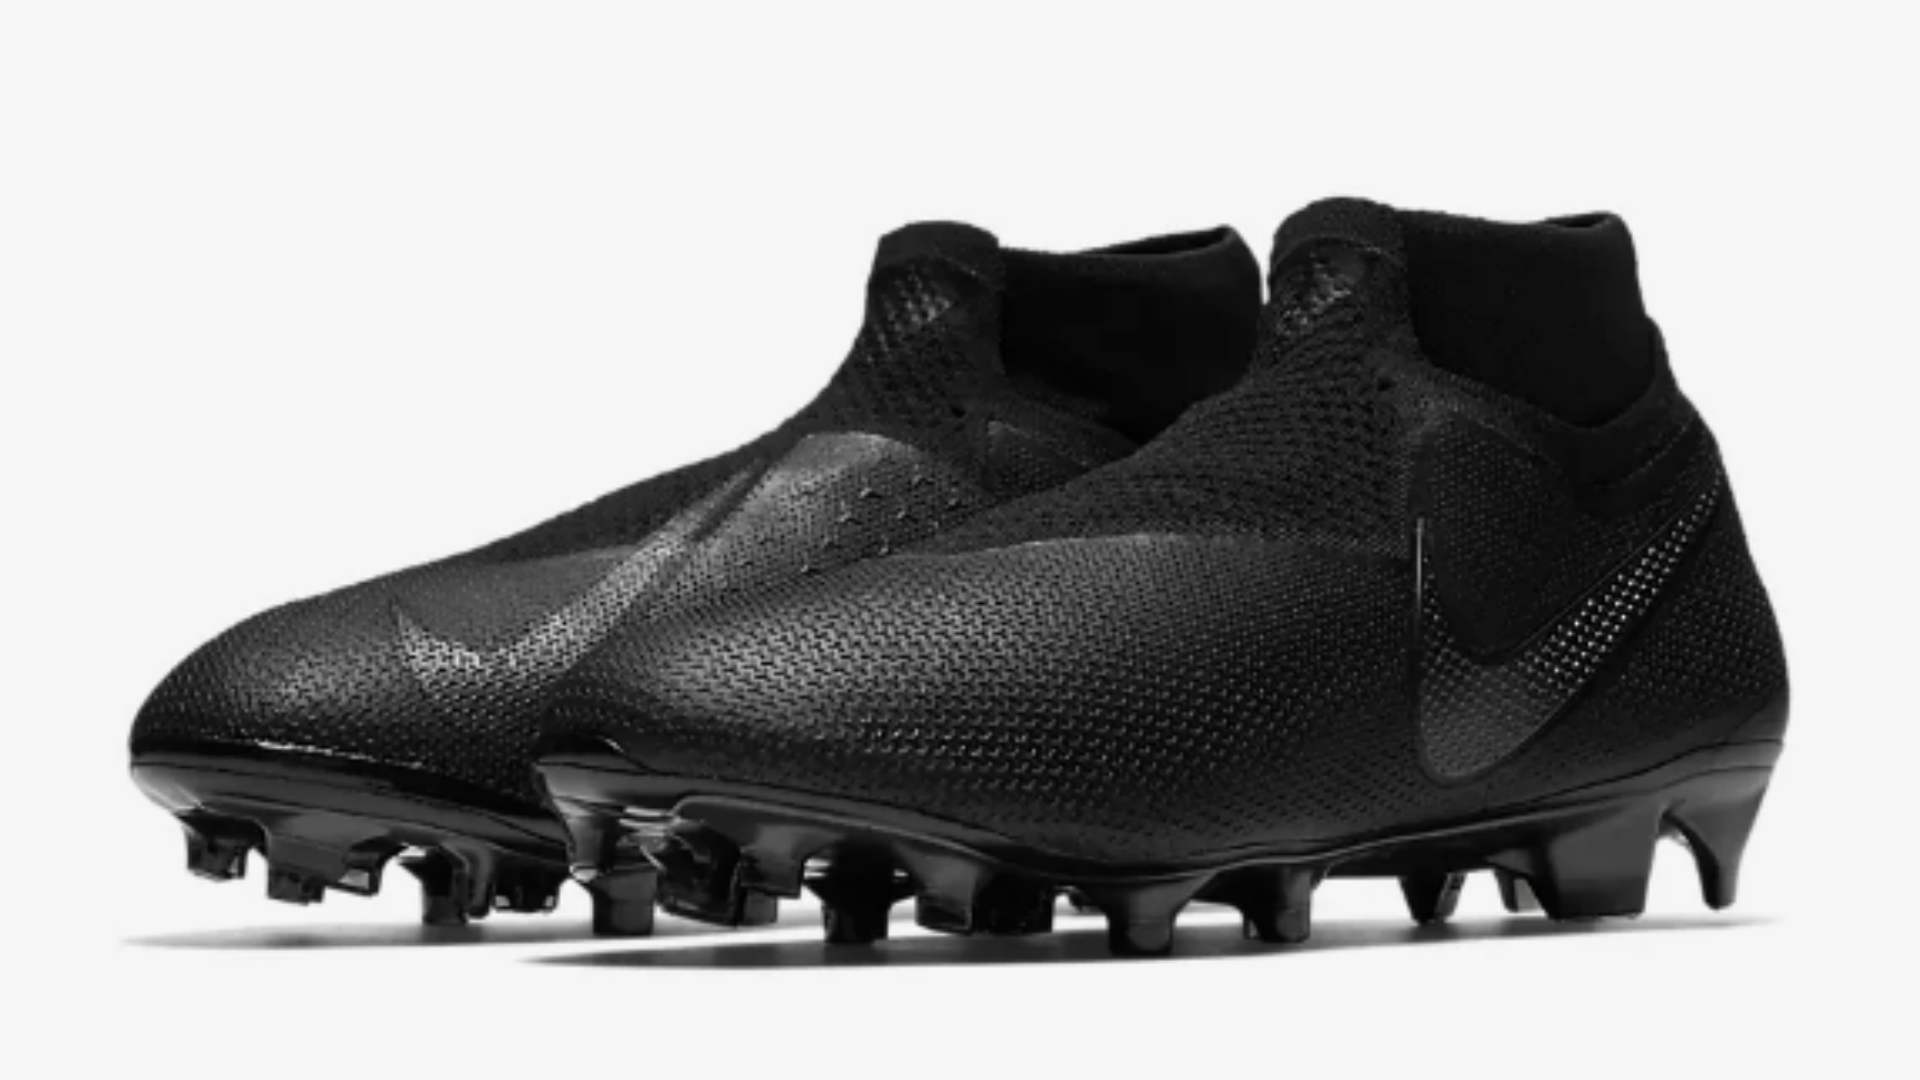 buy \u003e boot bola nike, Up to 60% OFF